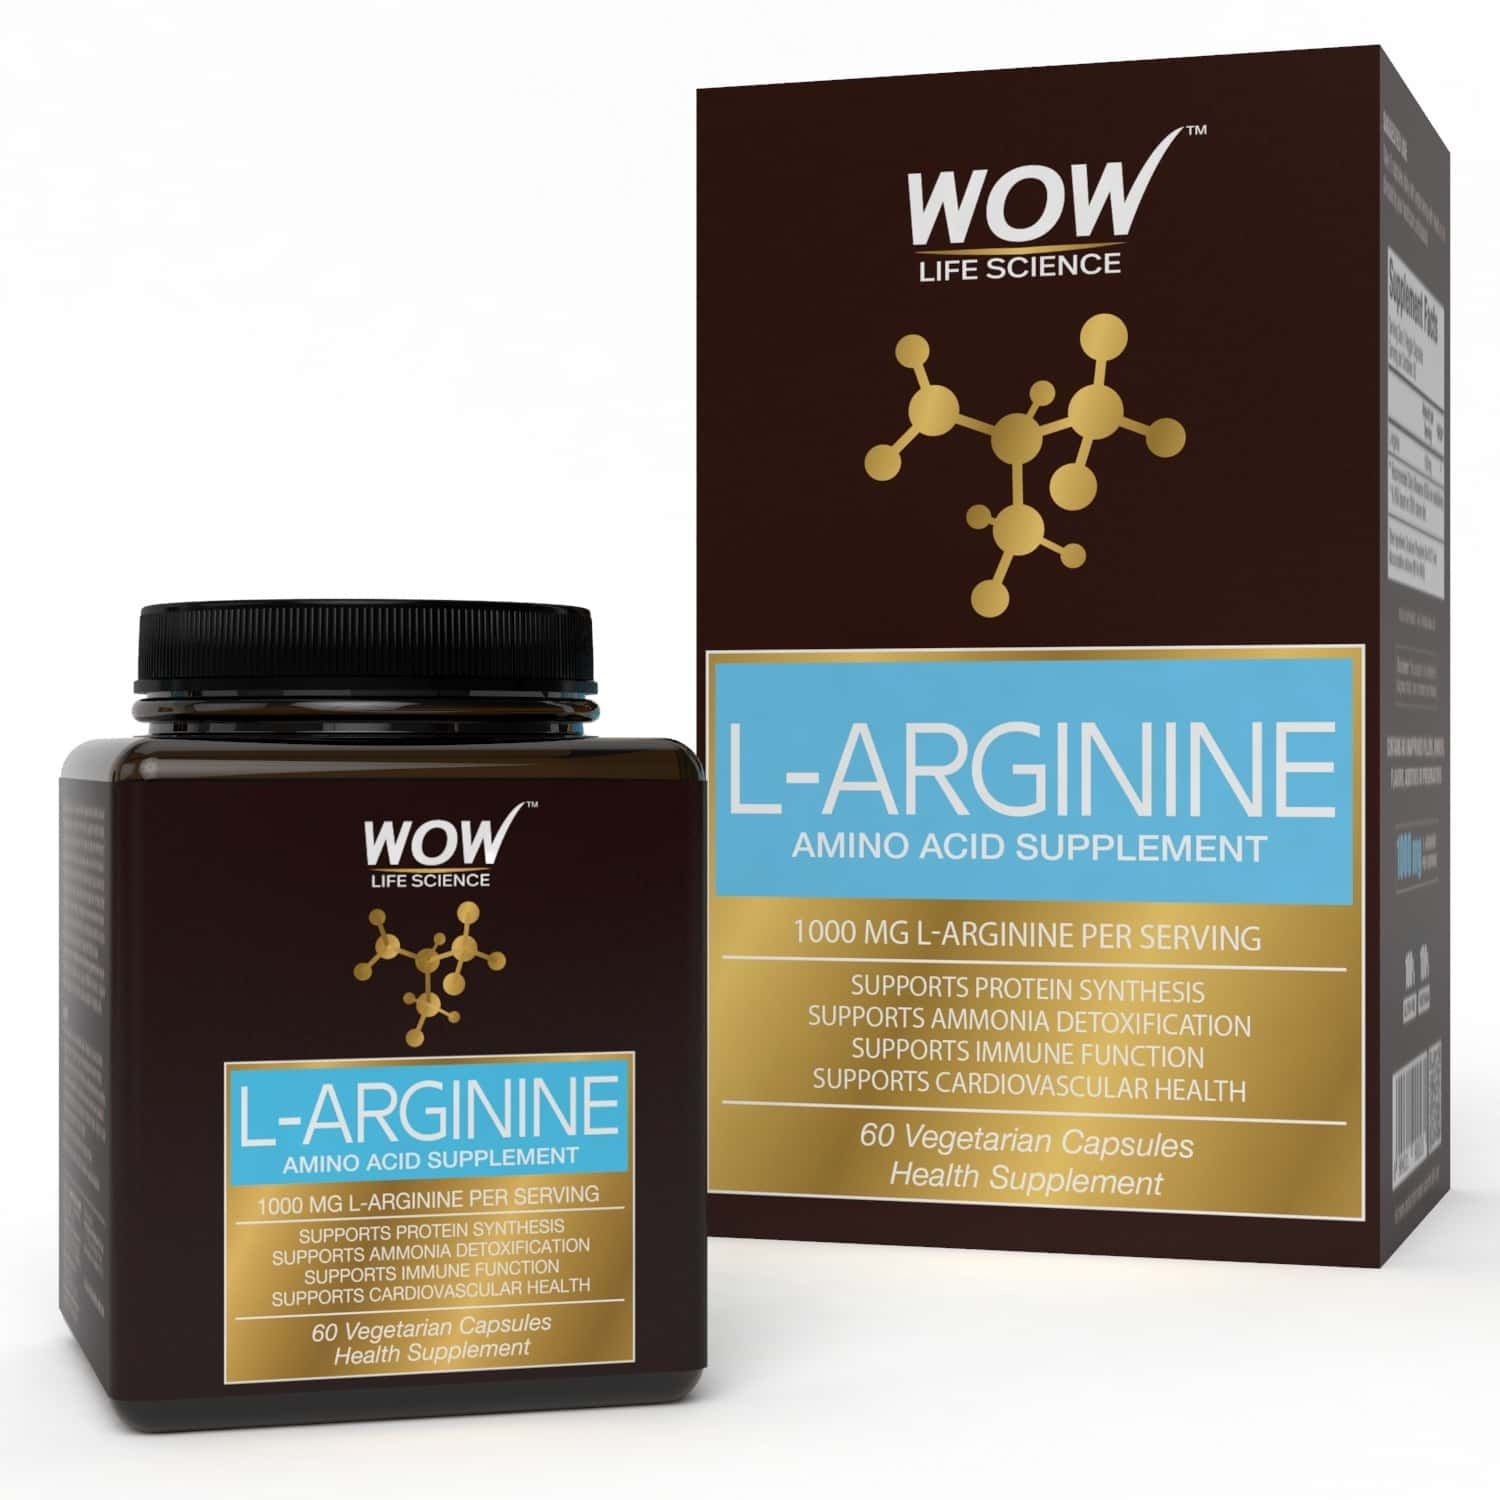 Wow Life Science 1000mg L-arginine Amino Acid Supplement  Veg Capsules  Bottle Of 60